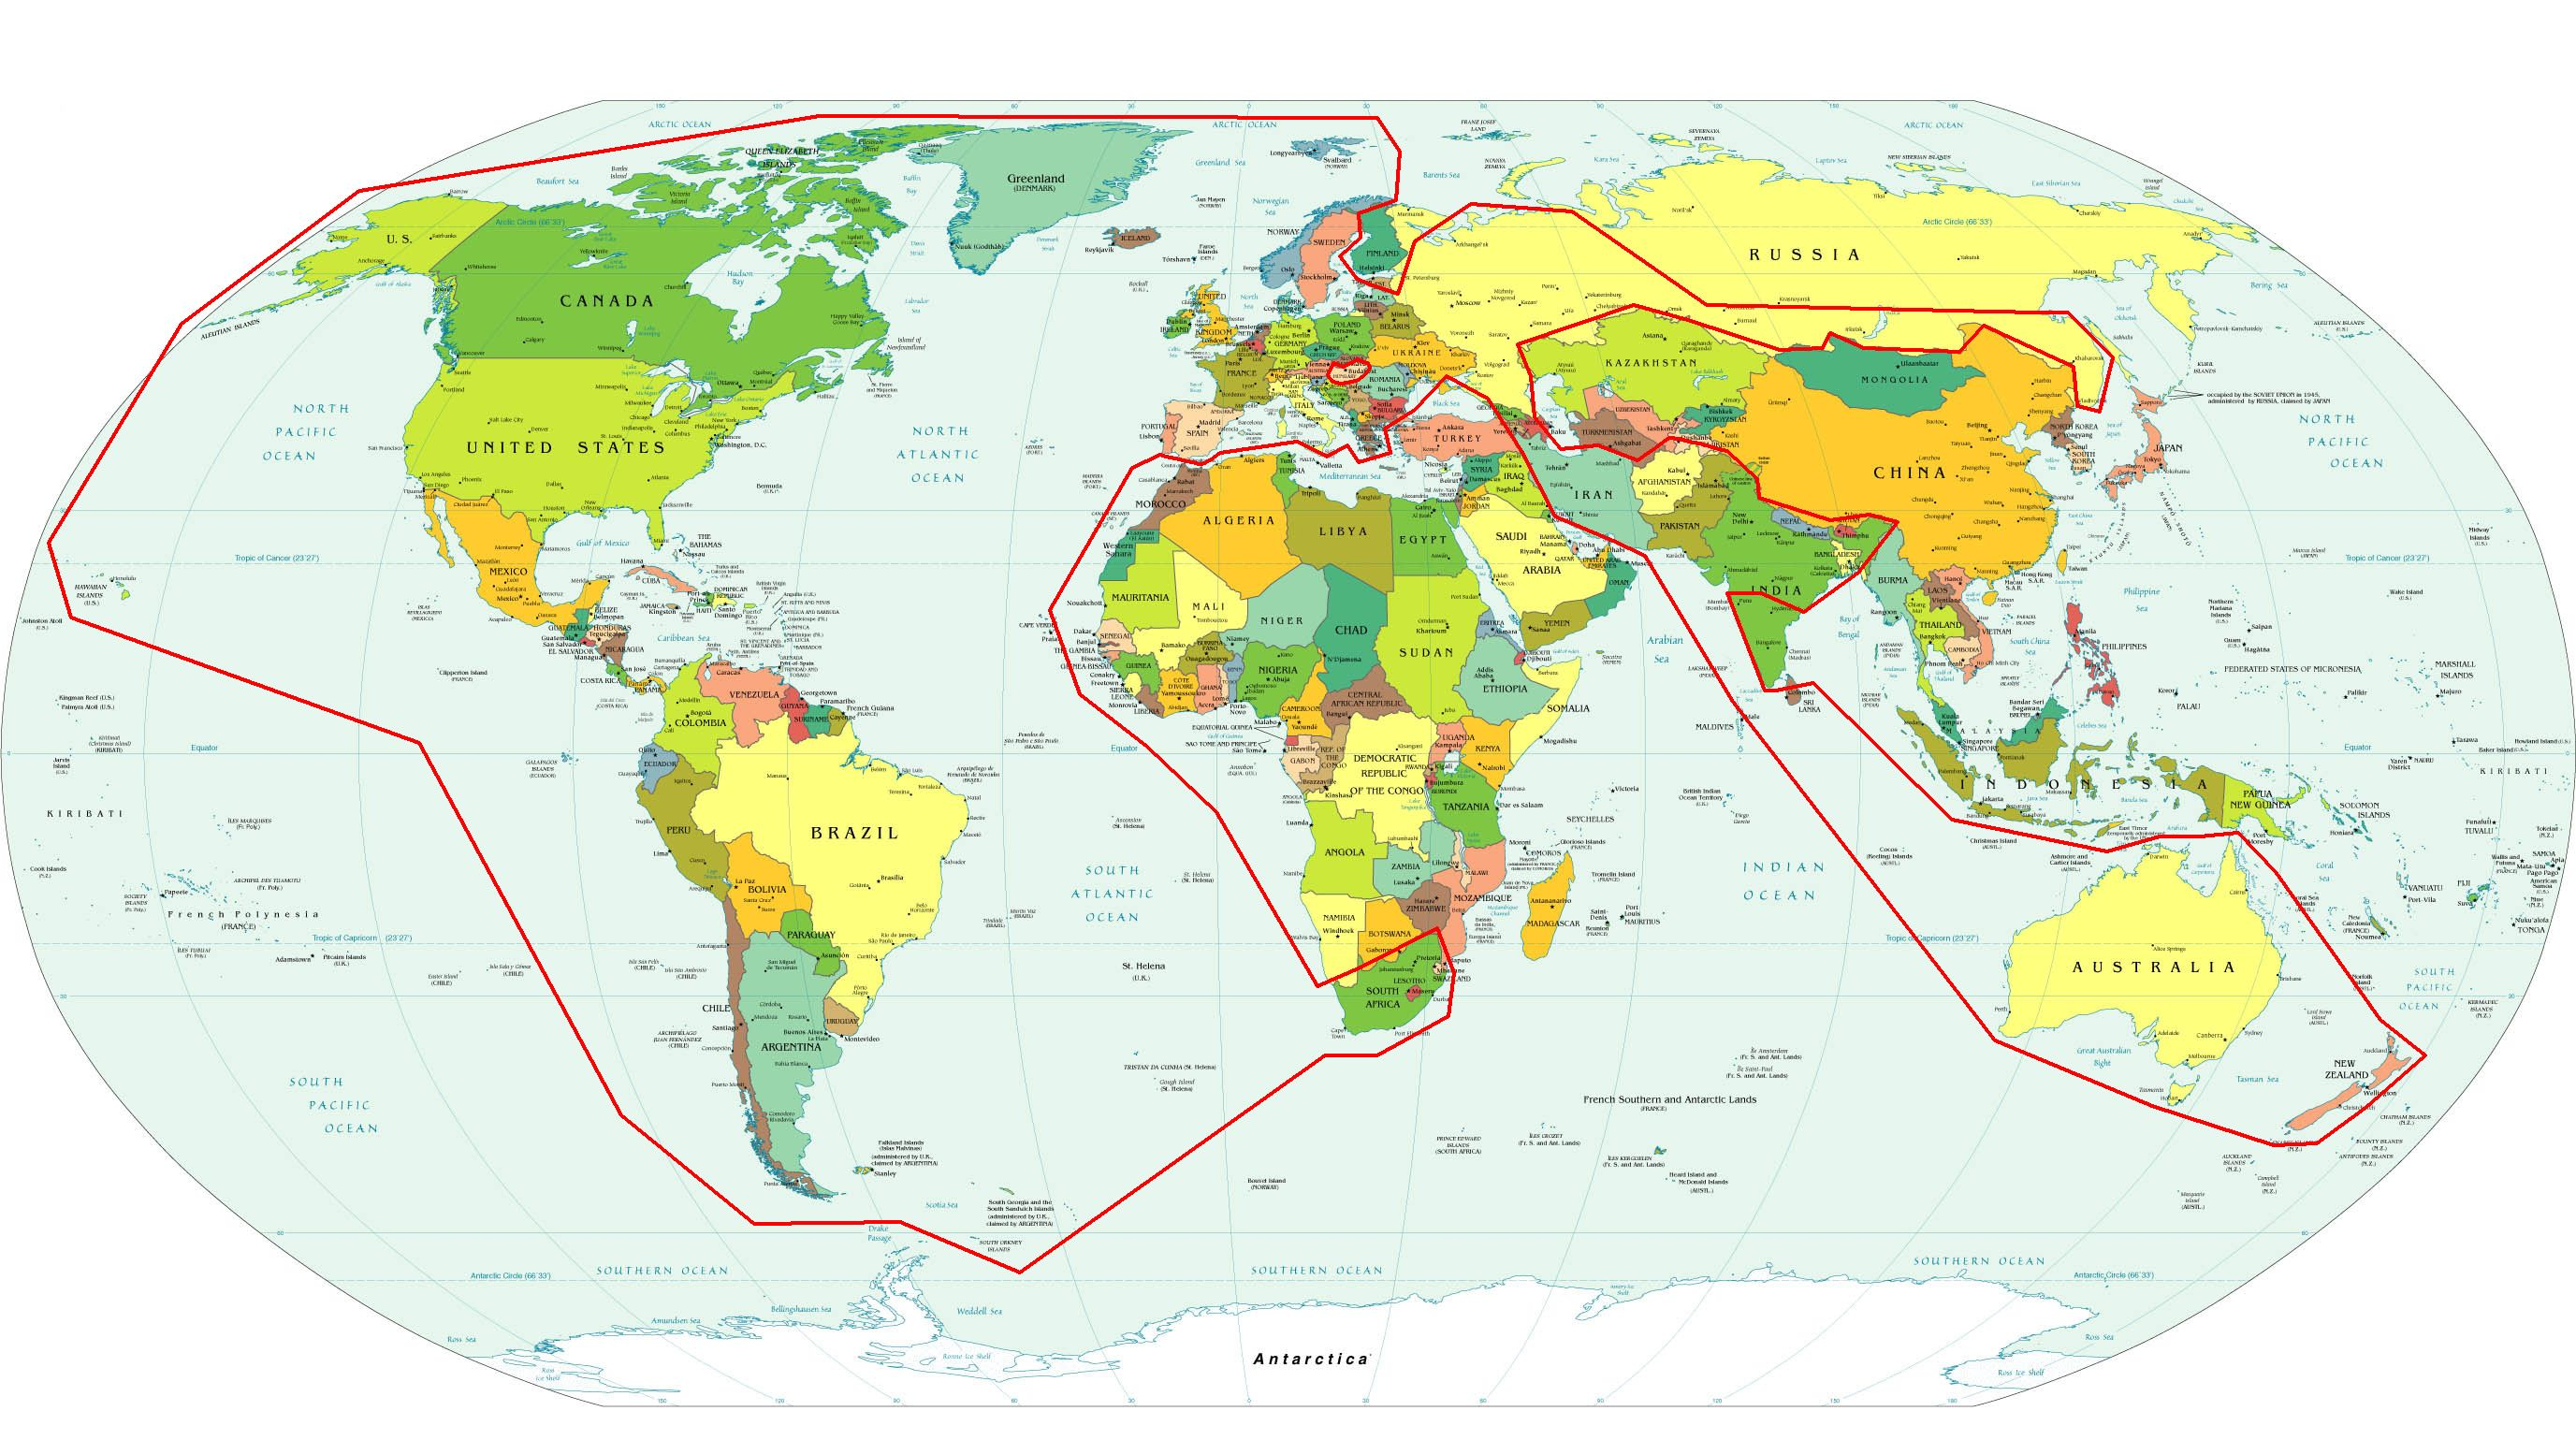 Indo european language areas of the world maps and globes indo european language areas of the world gumiabroncs Image collections